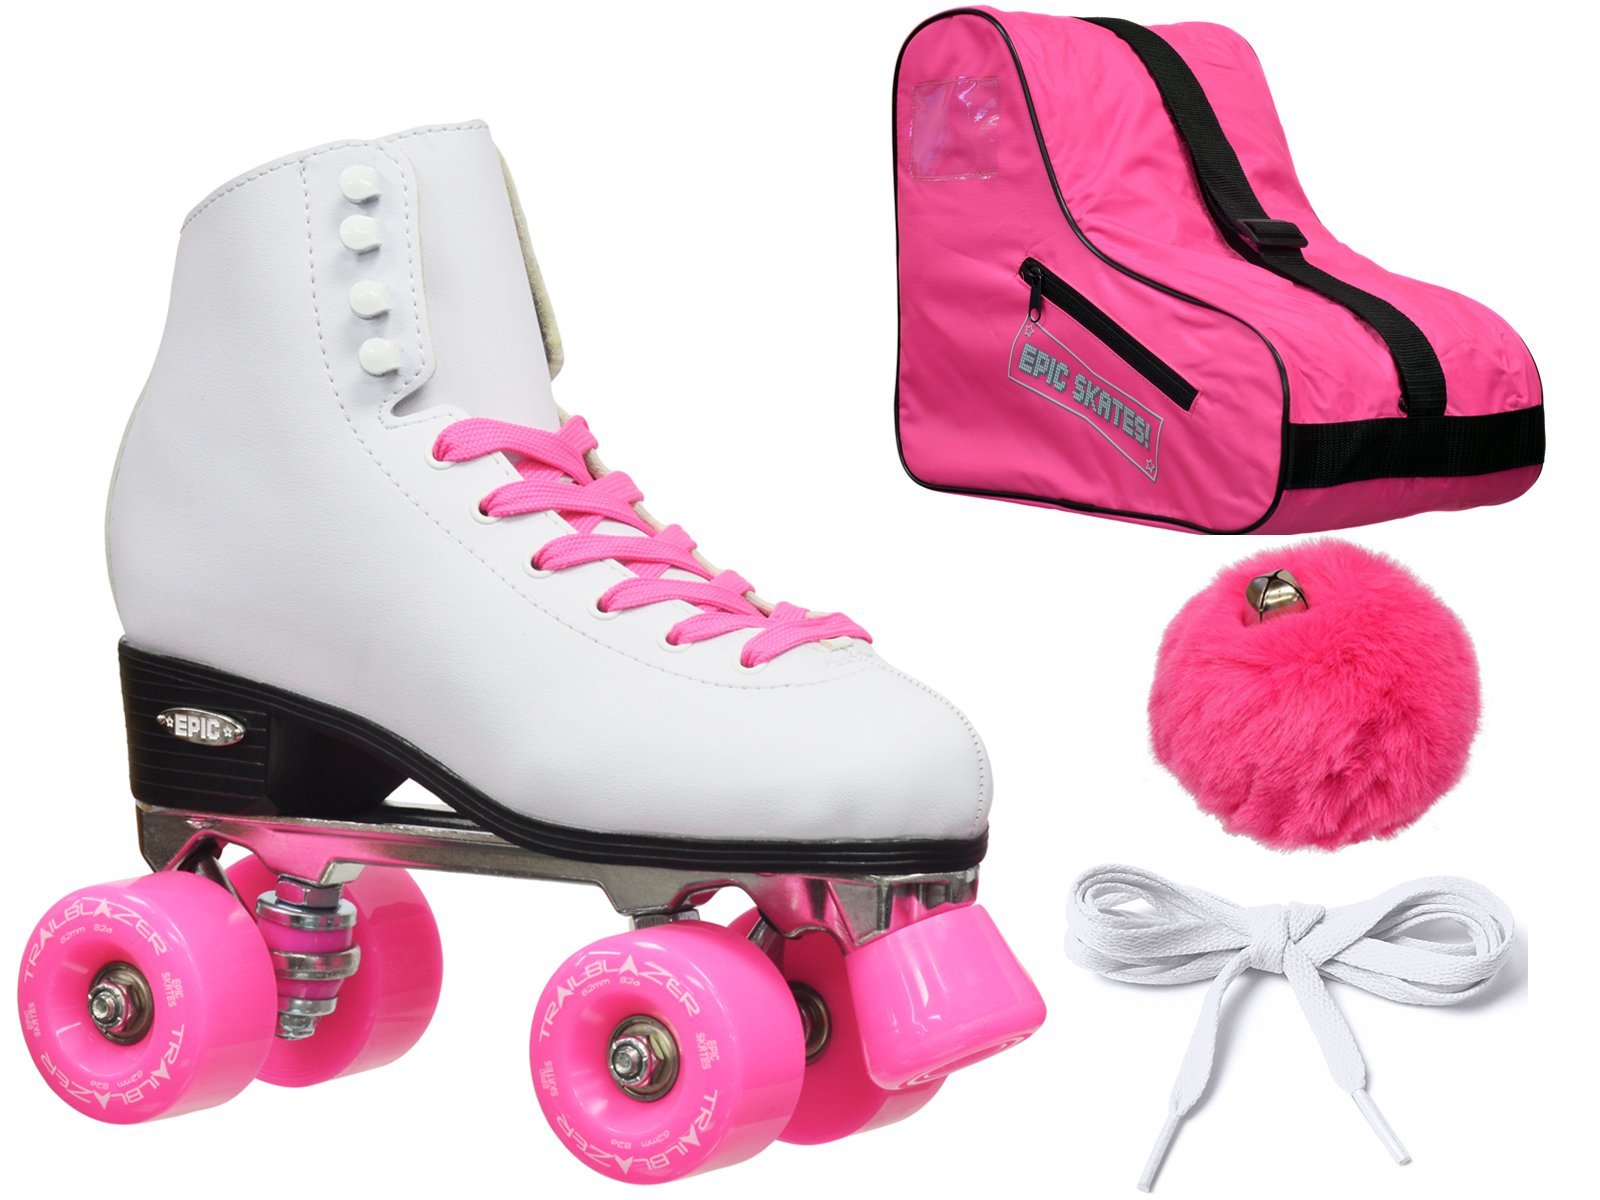 New! Epic Classic White & Pink High-Top Quad Roller Skate Bundle w/ Bag, Laces, & Pom Poms! (Ladies 8)